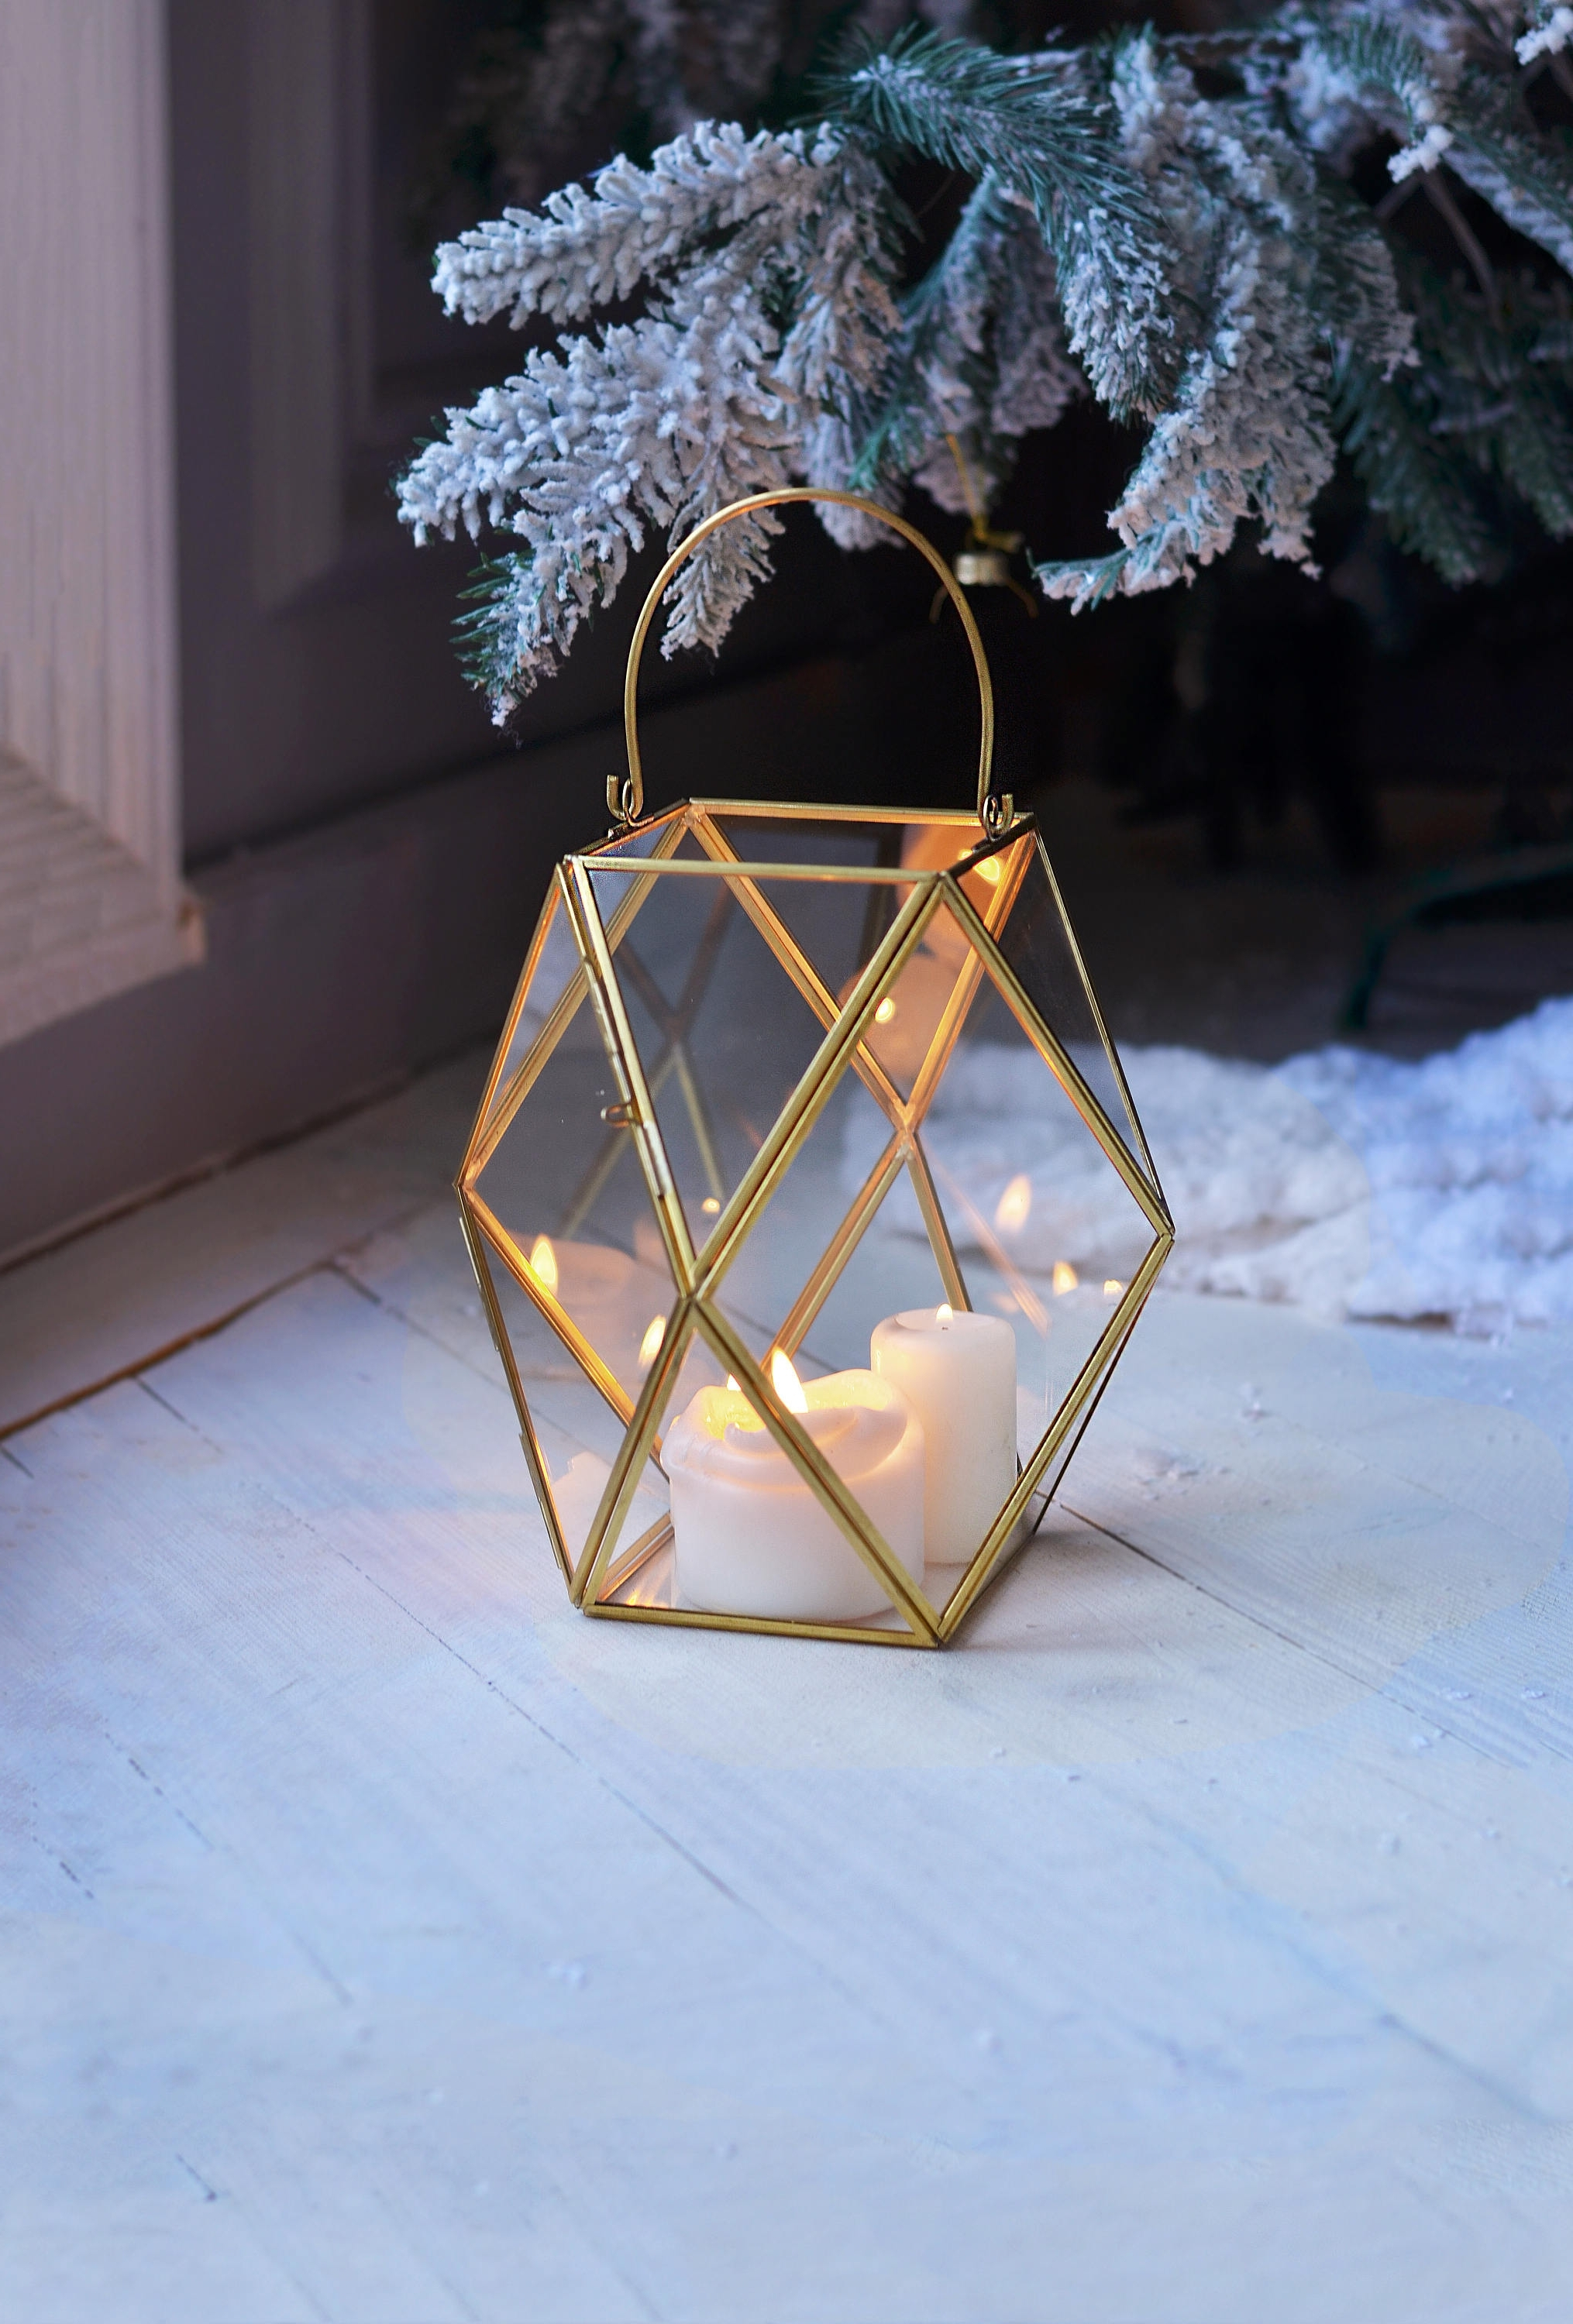 Lantern Centerpiece Geometric Candle Holder Wedding Lantern (View 9 of 20)